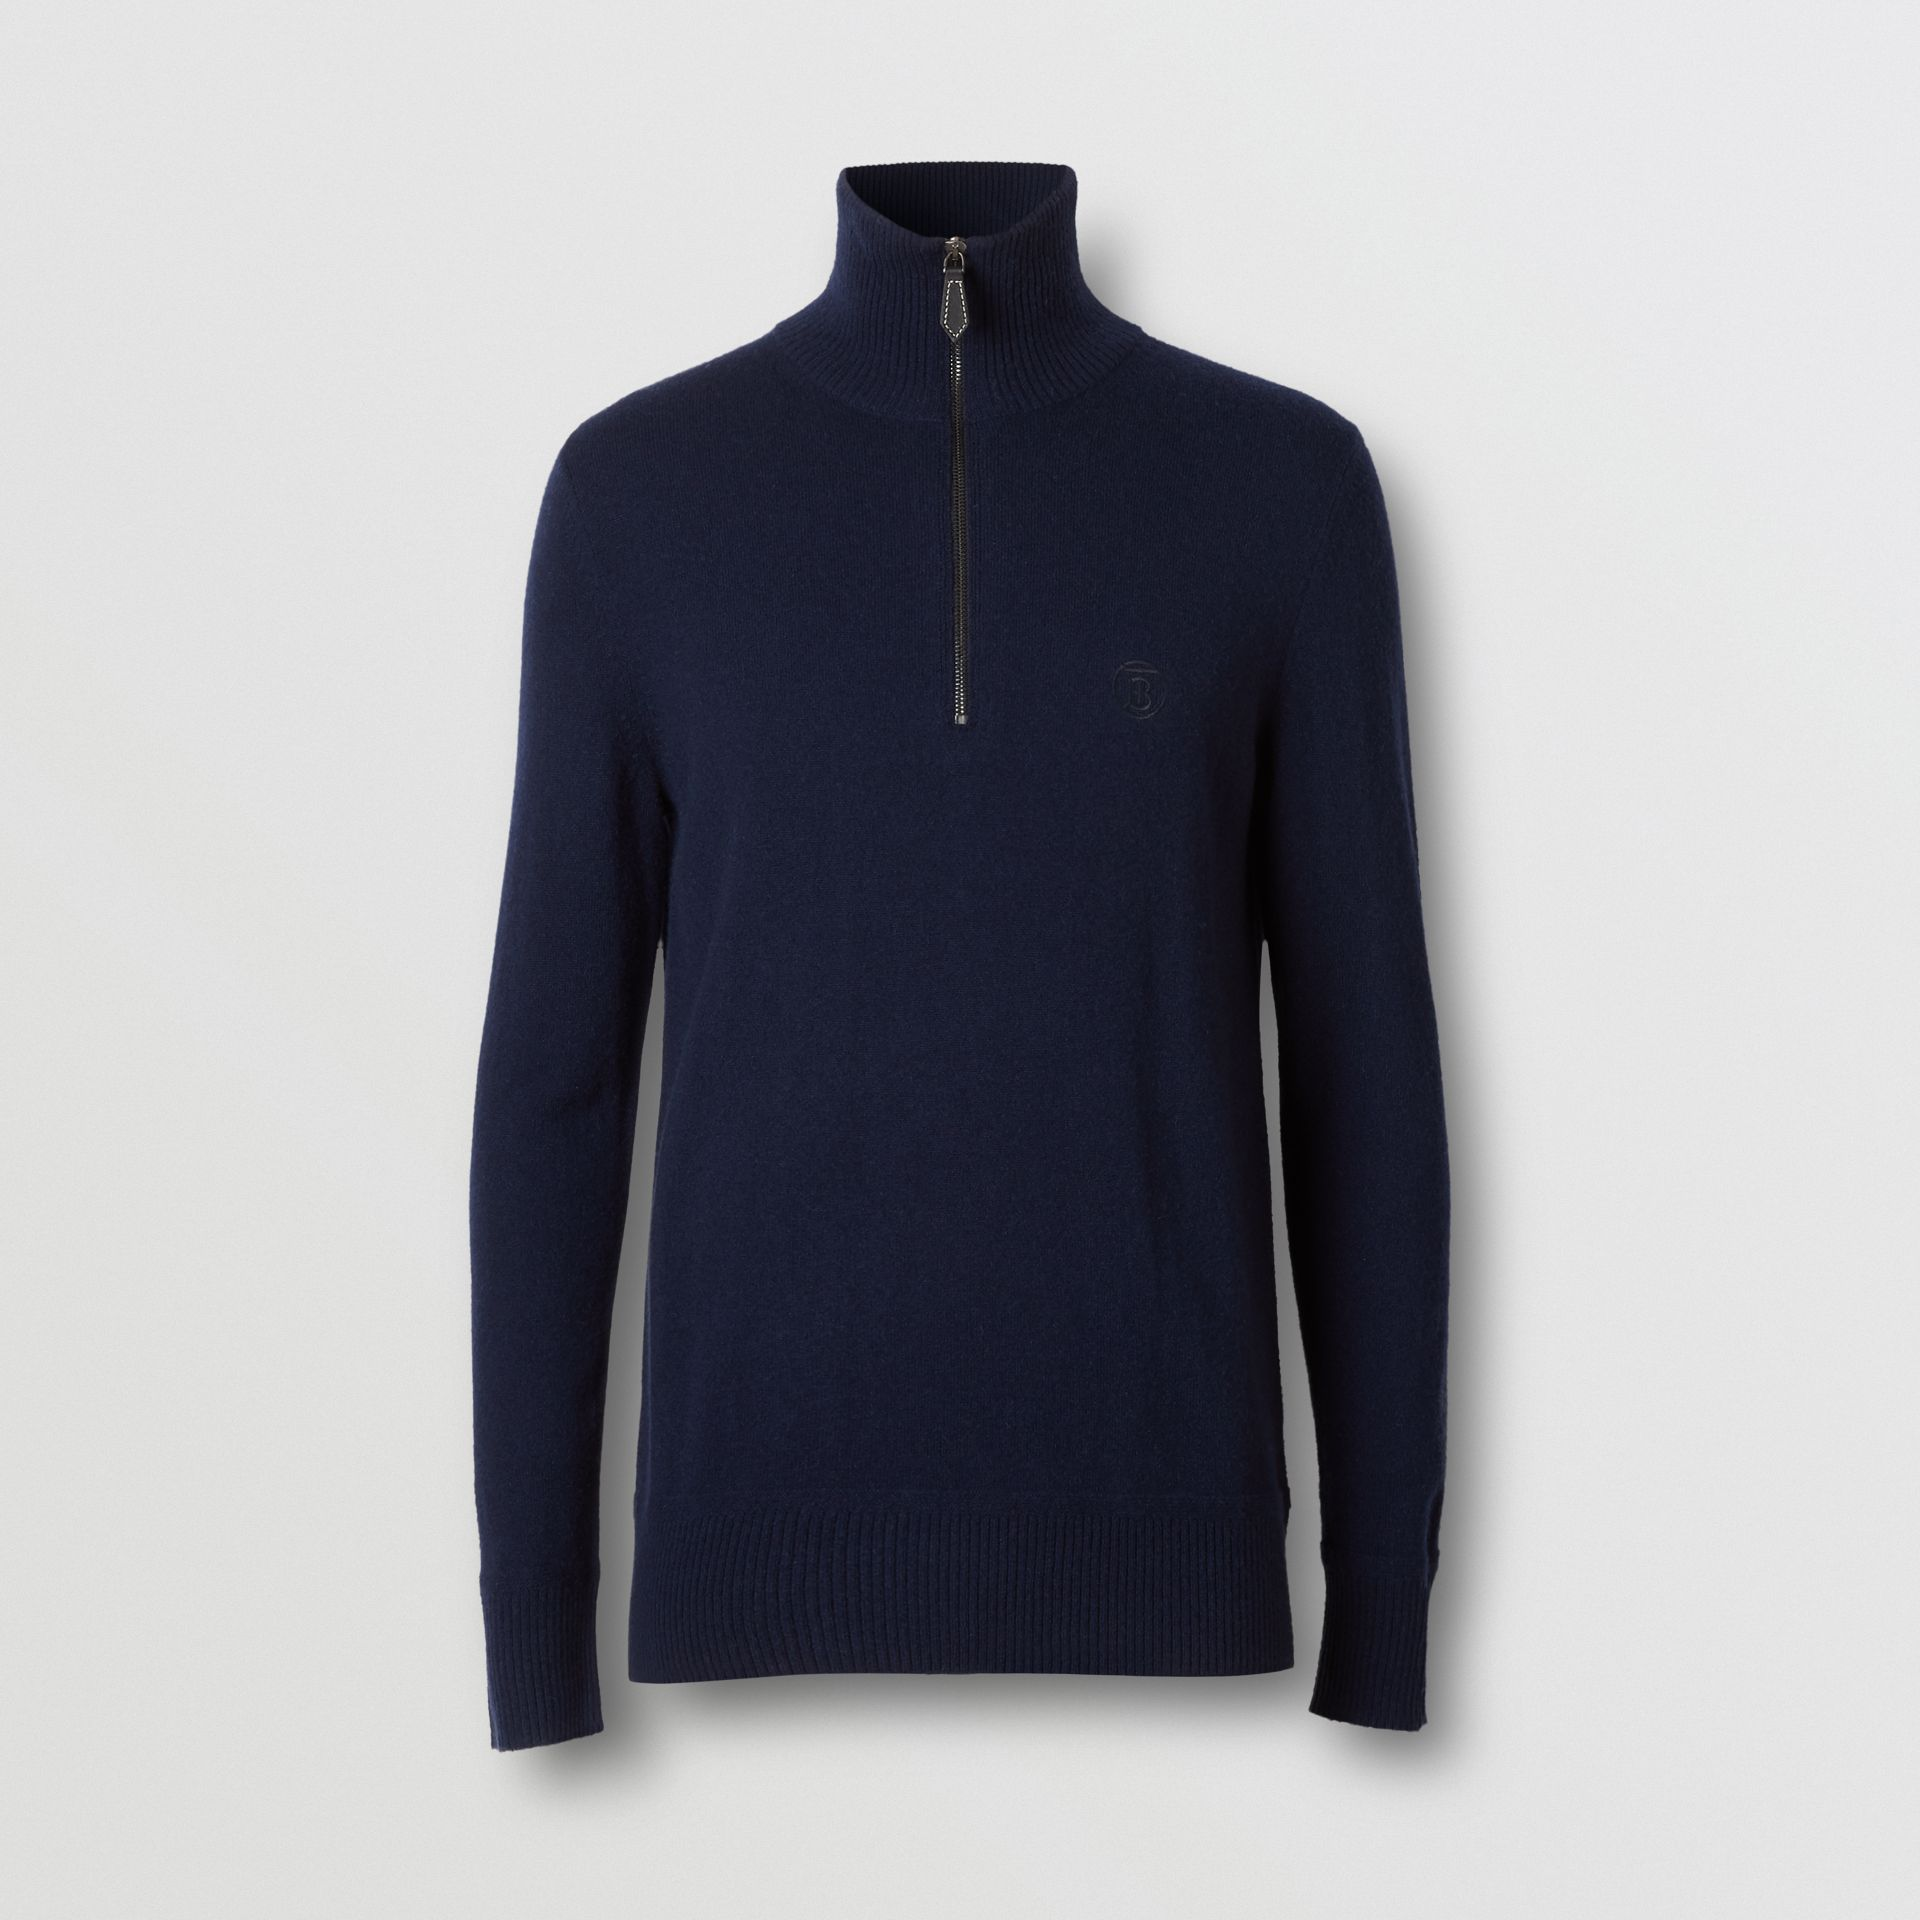 Monogram Motif Cashmere Funnel Neck Sweater in Navy - Men | Burberry Hong Kong S.A.R - gallery image 3